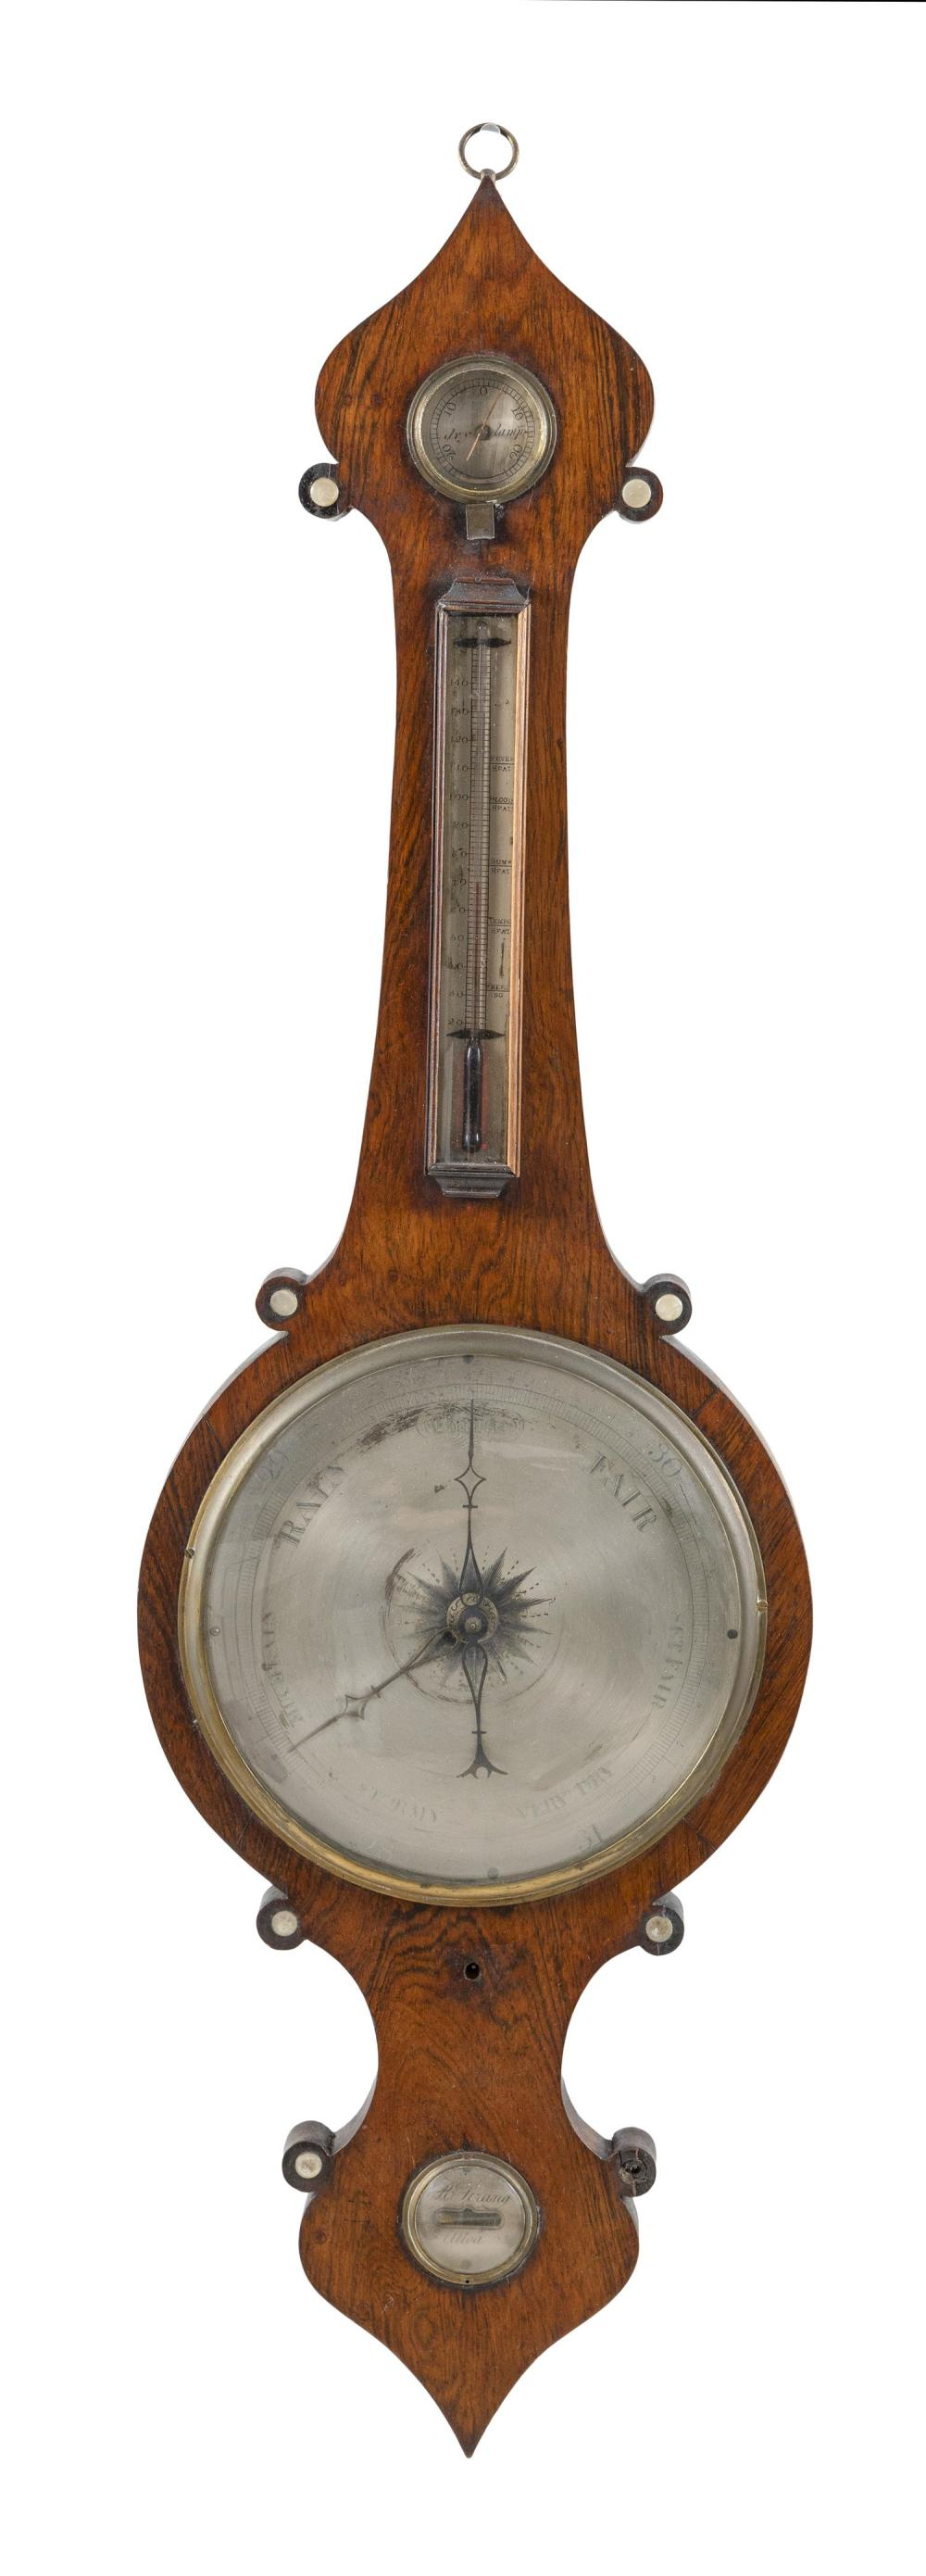 ROBERT STRANG BANJO BAROMETER Walnut veneer case. Height 43